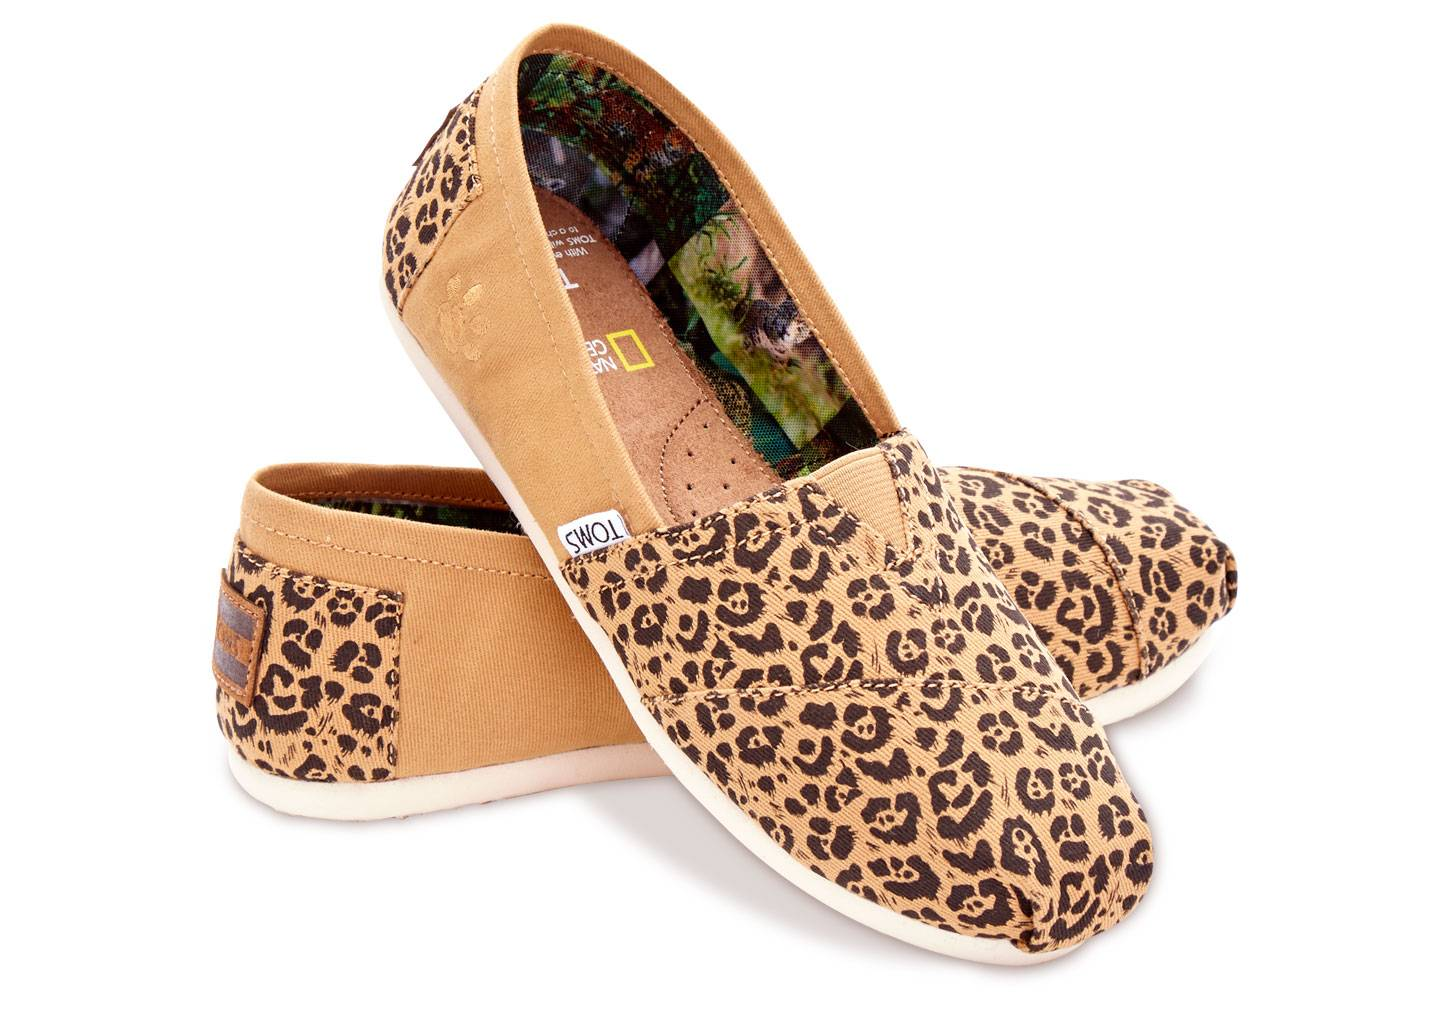 toms offers